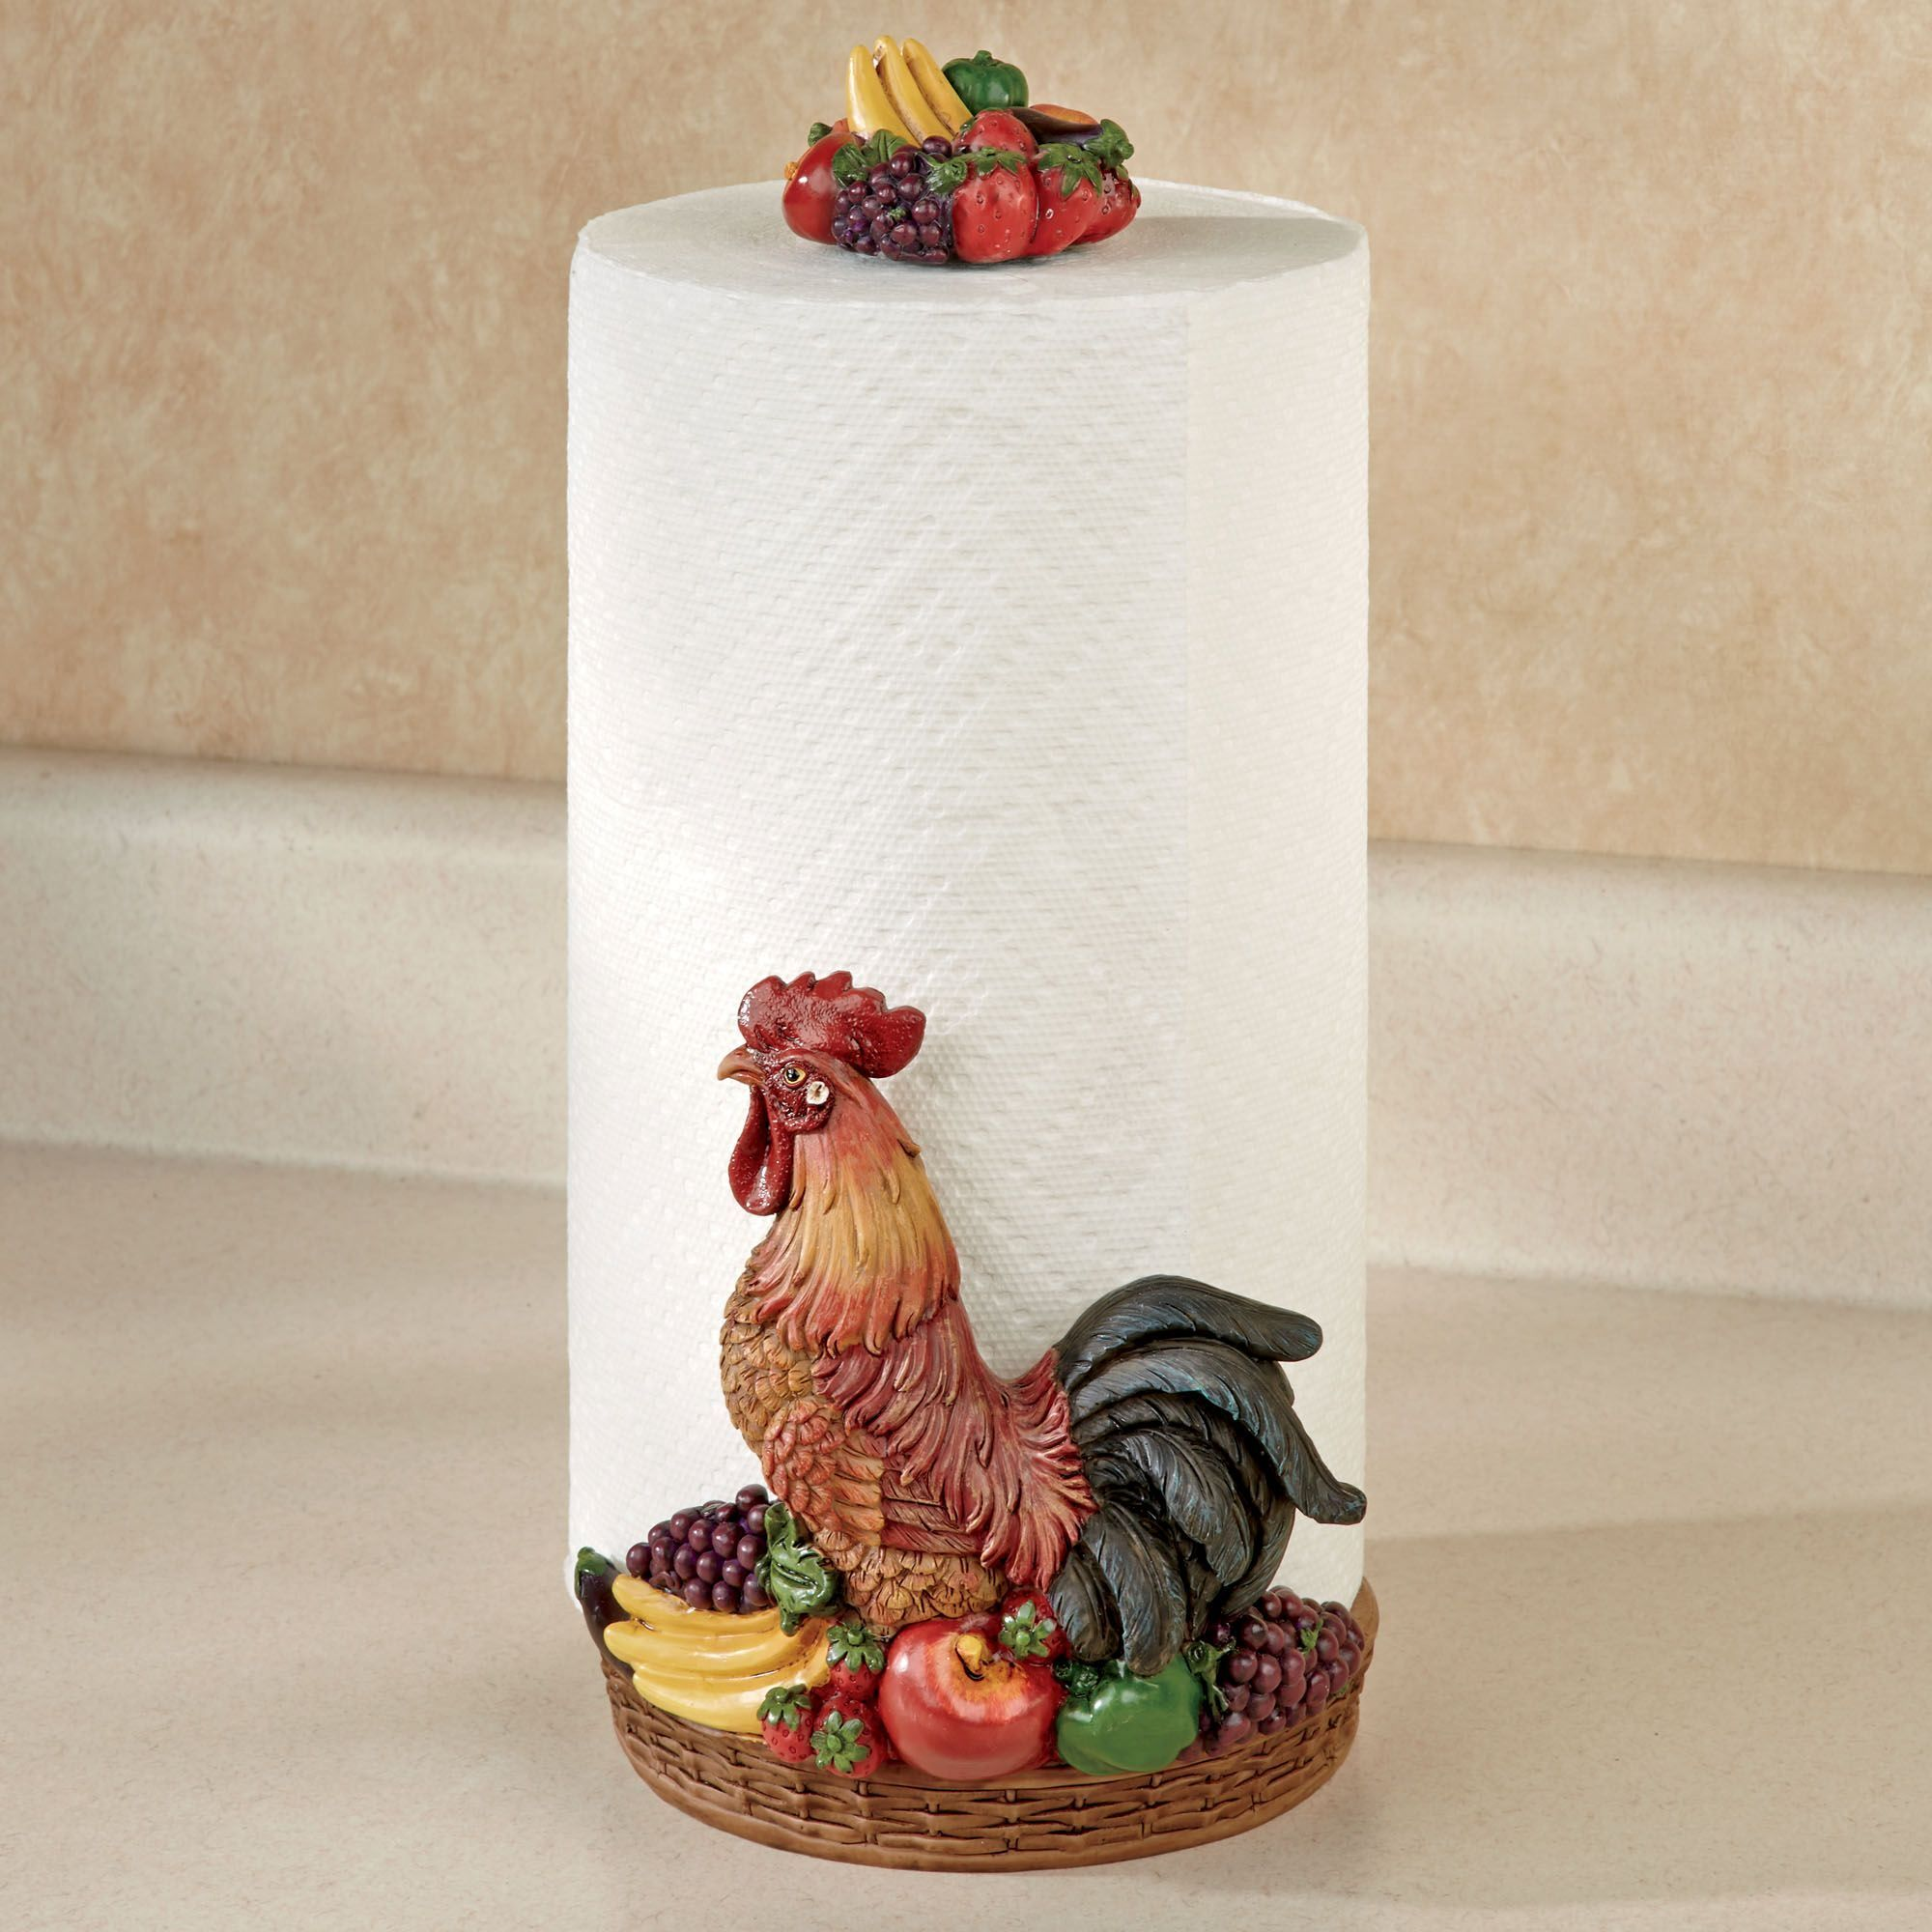 Rooster Medley Paper Towel Holder | Paper towel holders and Paper towels